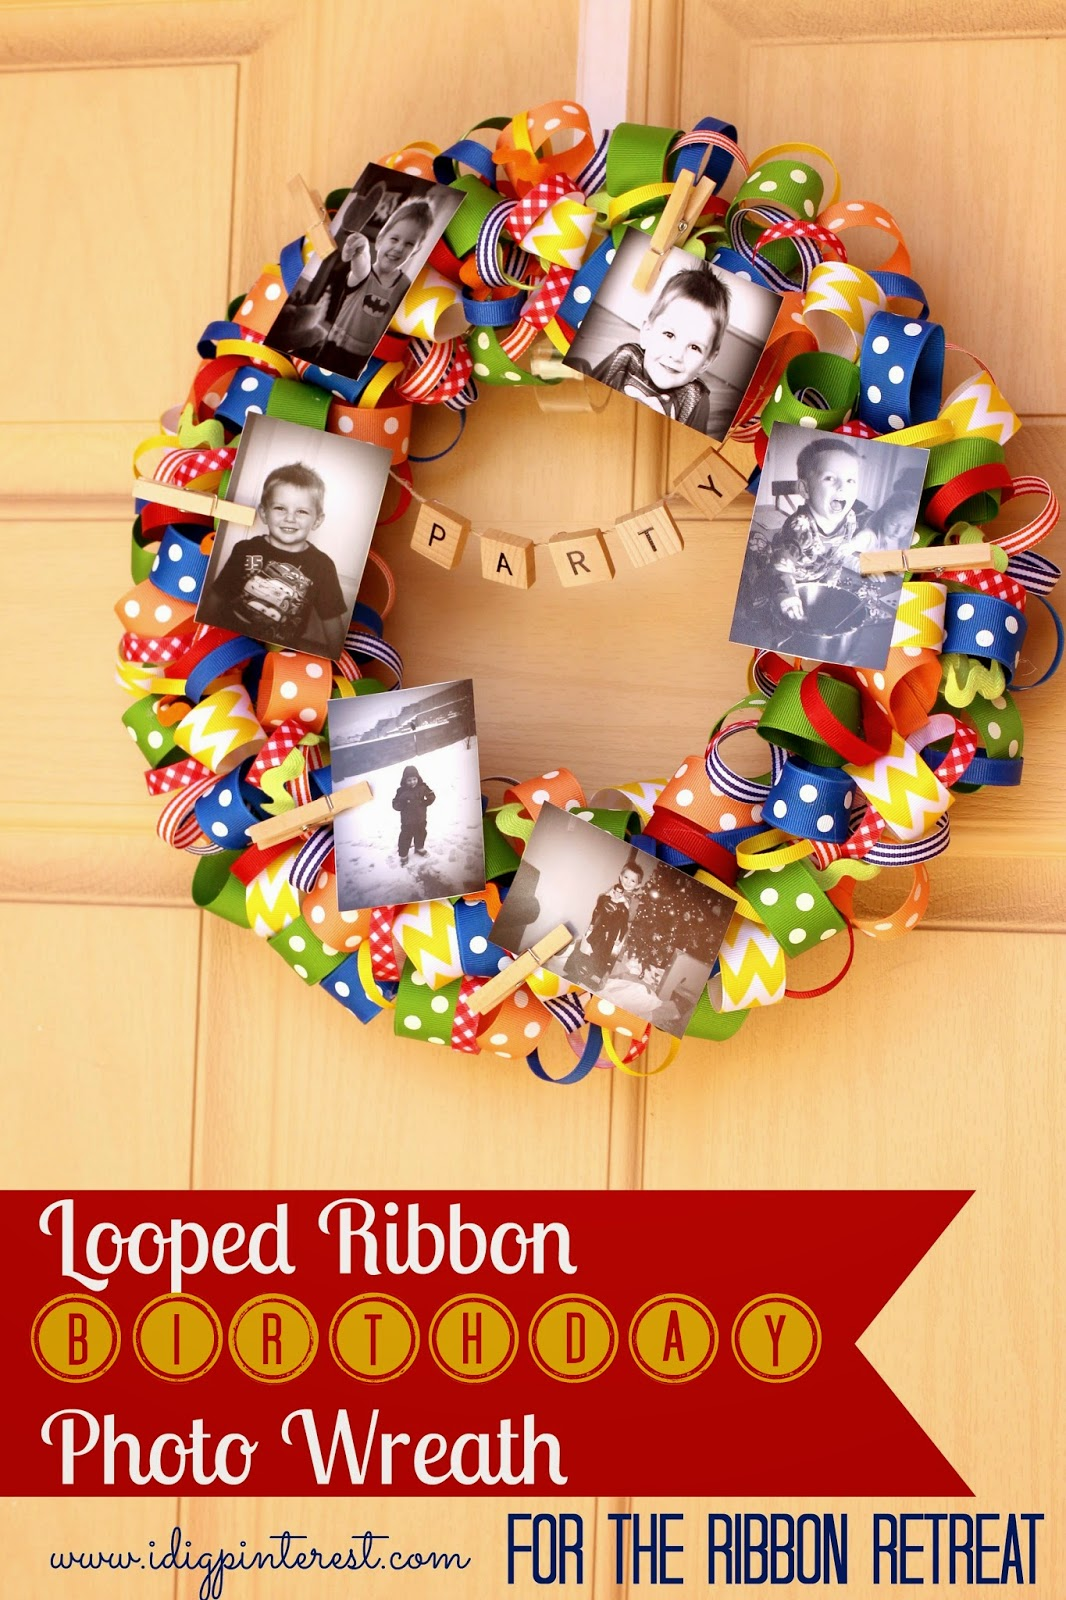 http://www.idigpinterest.com/2014/04/looped-ribbon-birthday-photo-wreath.html